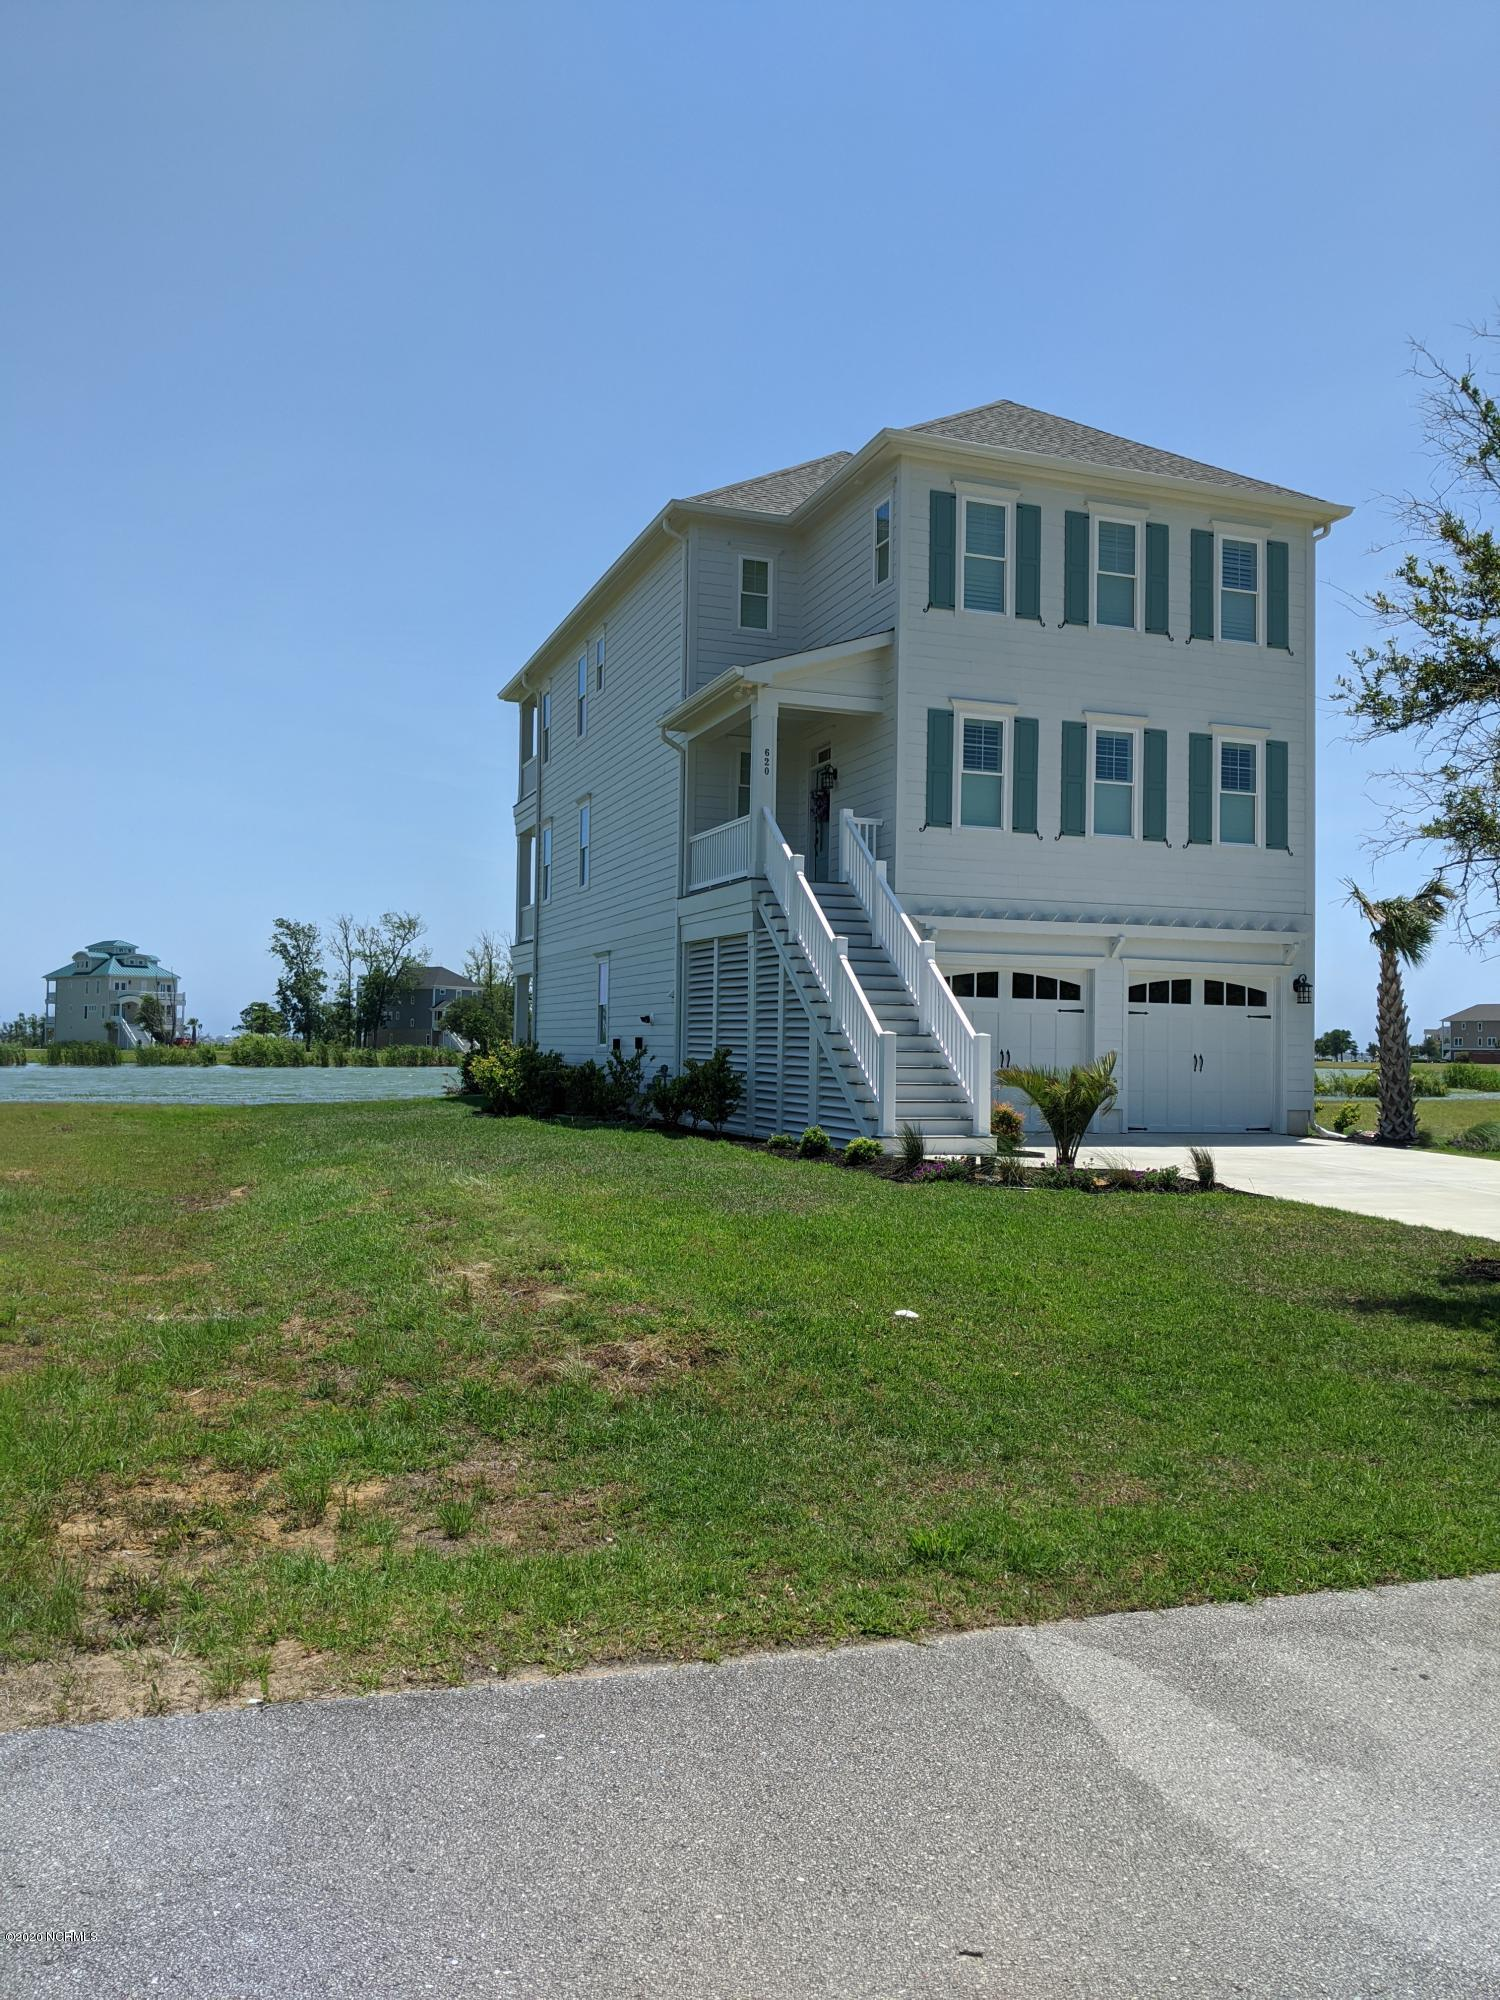 620 Cannonsgate Drive, Newport, North Carolina 28570, 4 Bedrooms Bedrooms, 8 Rooms Rooms,4 BathroomsBathrooms,Single family residence,For sale,Cannonsgate,100229822